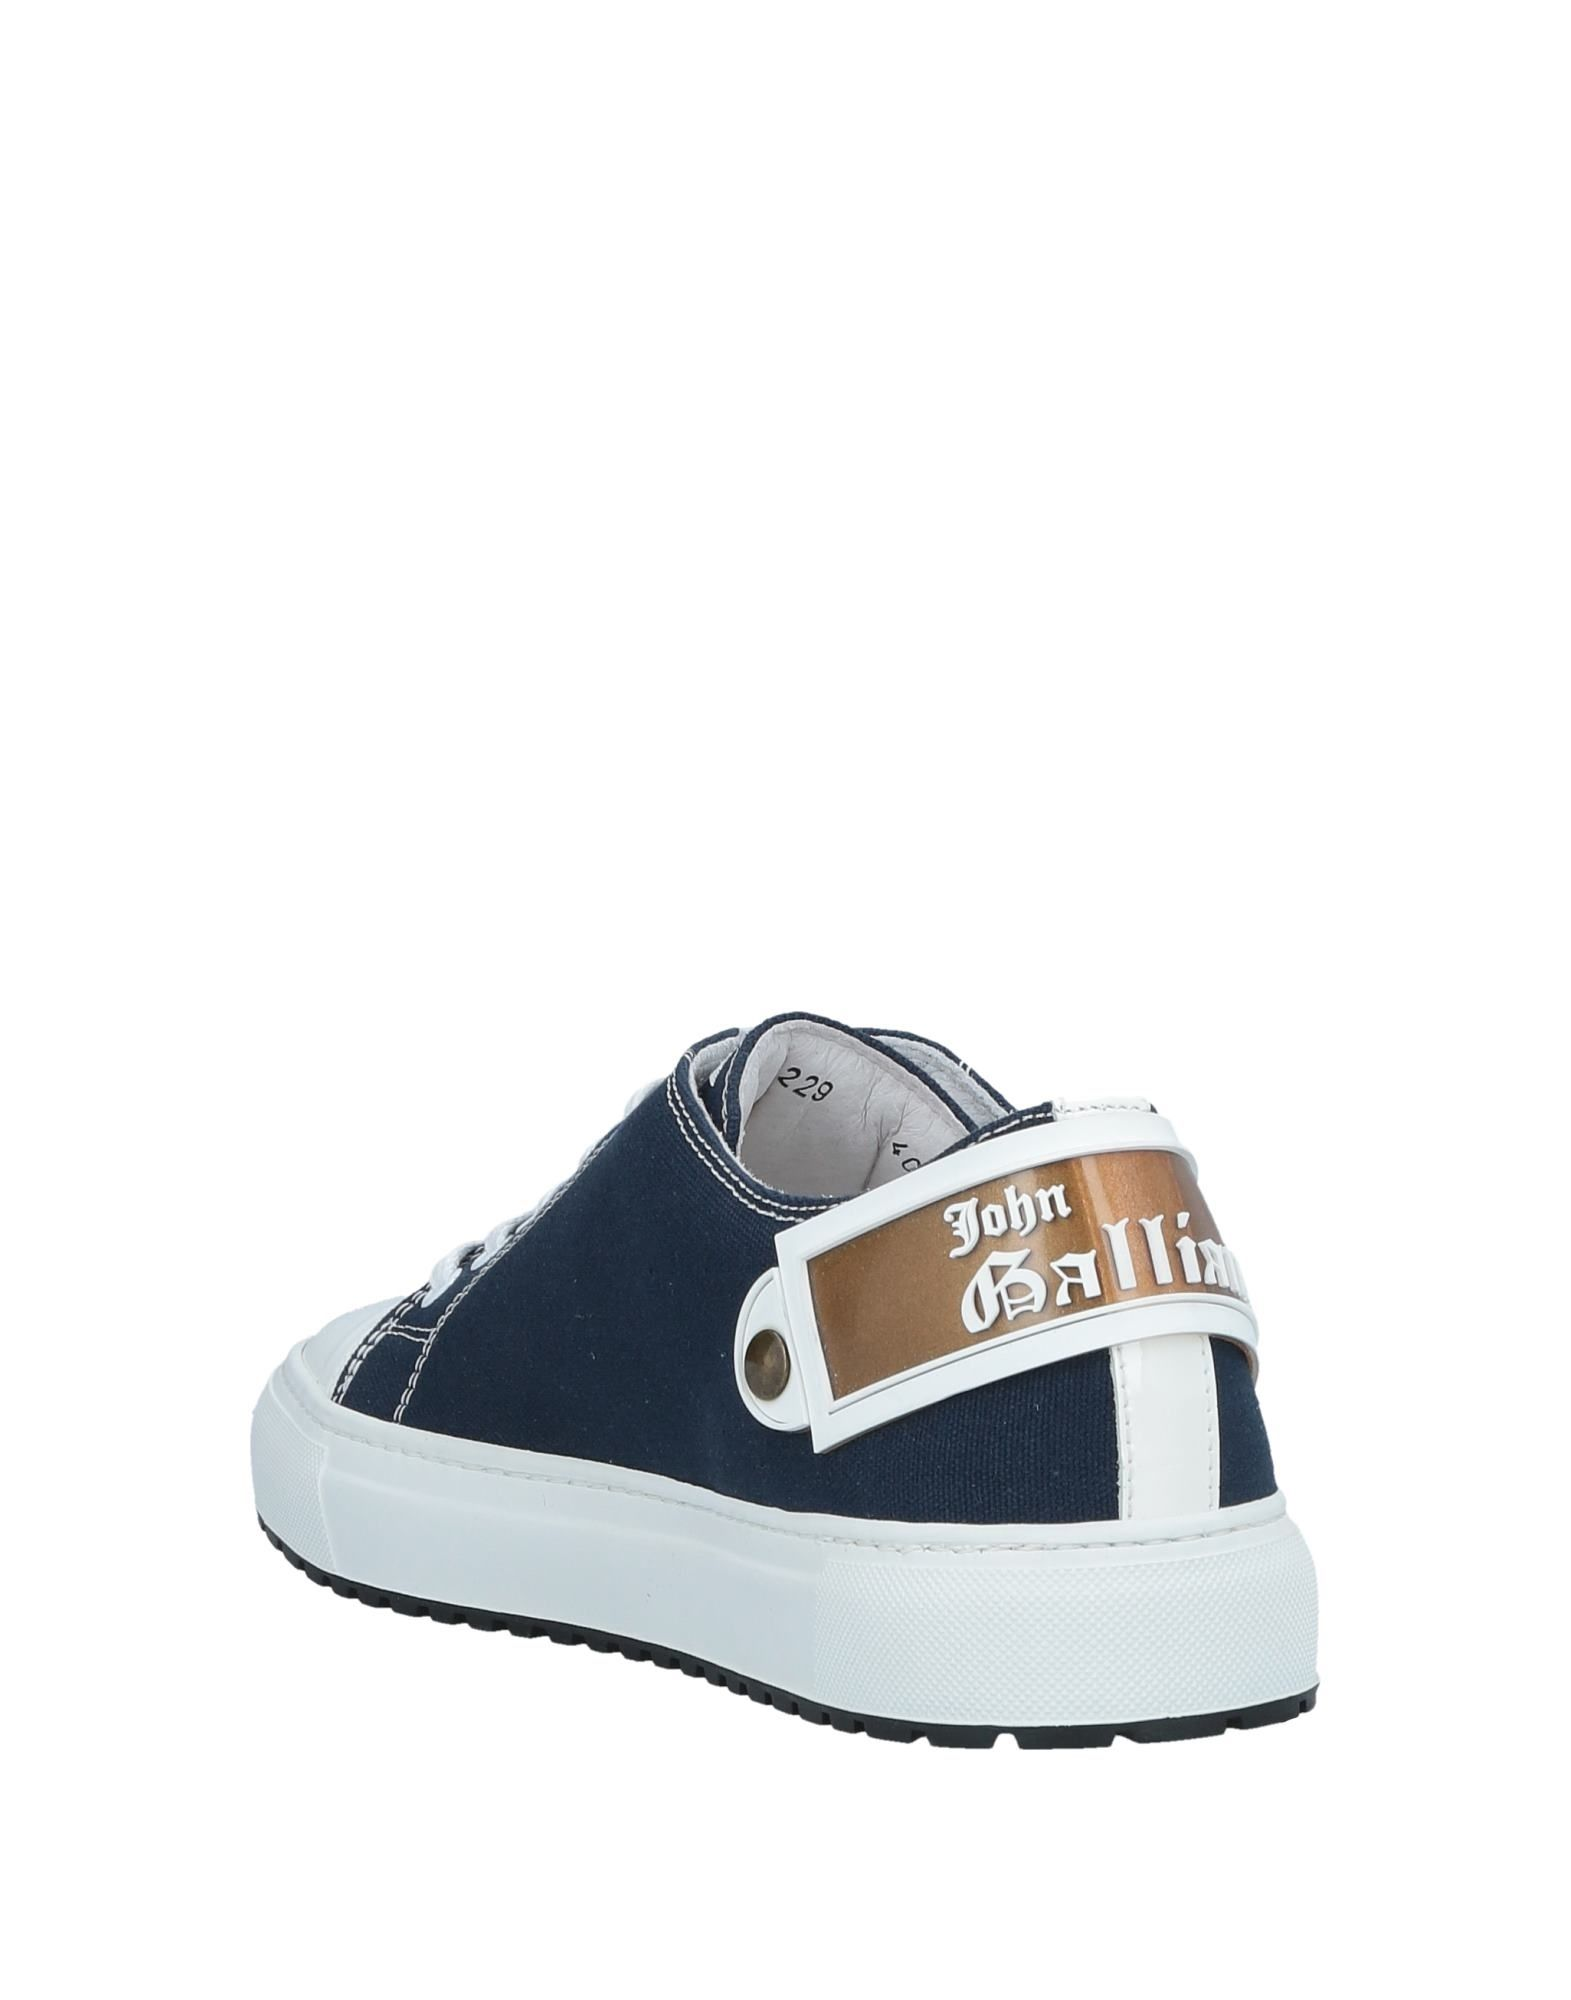 John Galliano Sneakers - Men John Galliano Sneakers - online on  Australia - Sneakers 11521045NL 2c5c87